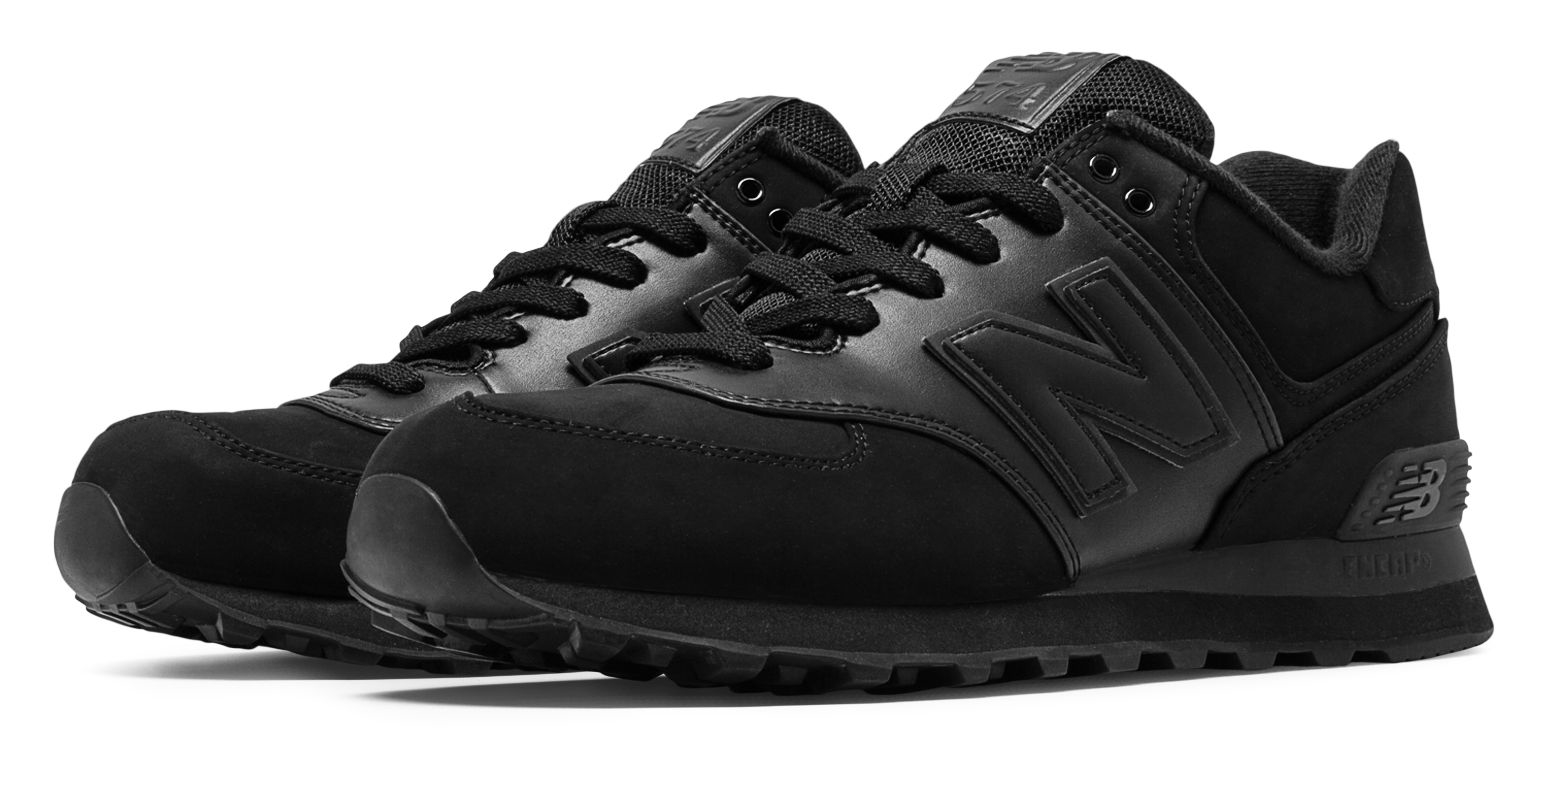 Lyst - New Balance 574 Chroma in Black for Men